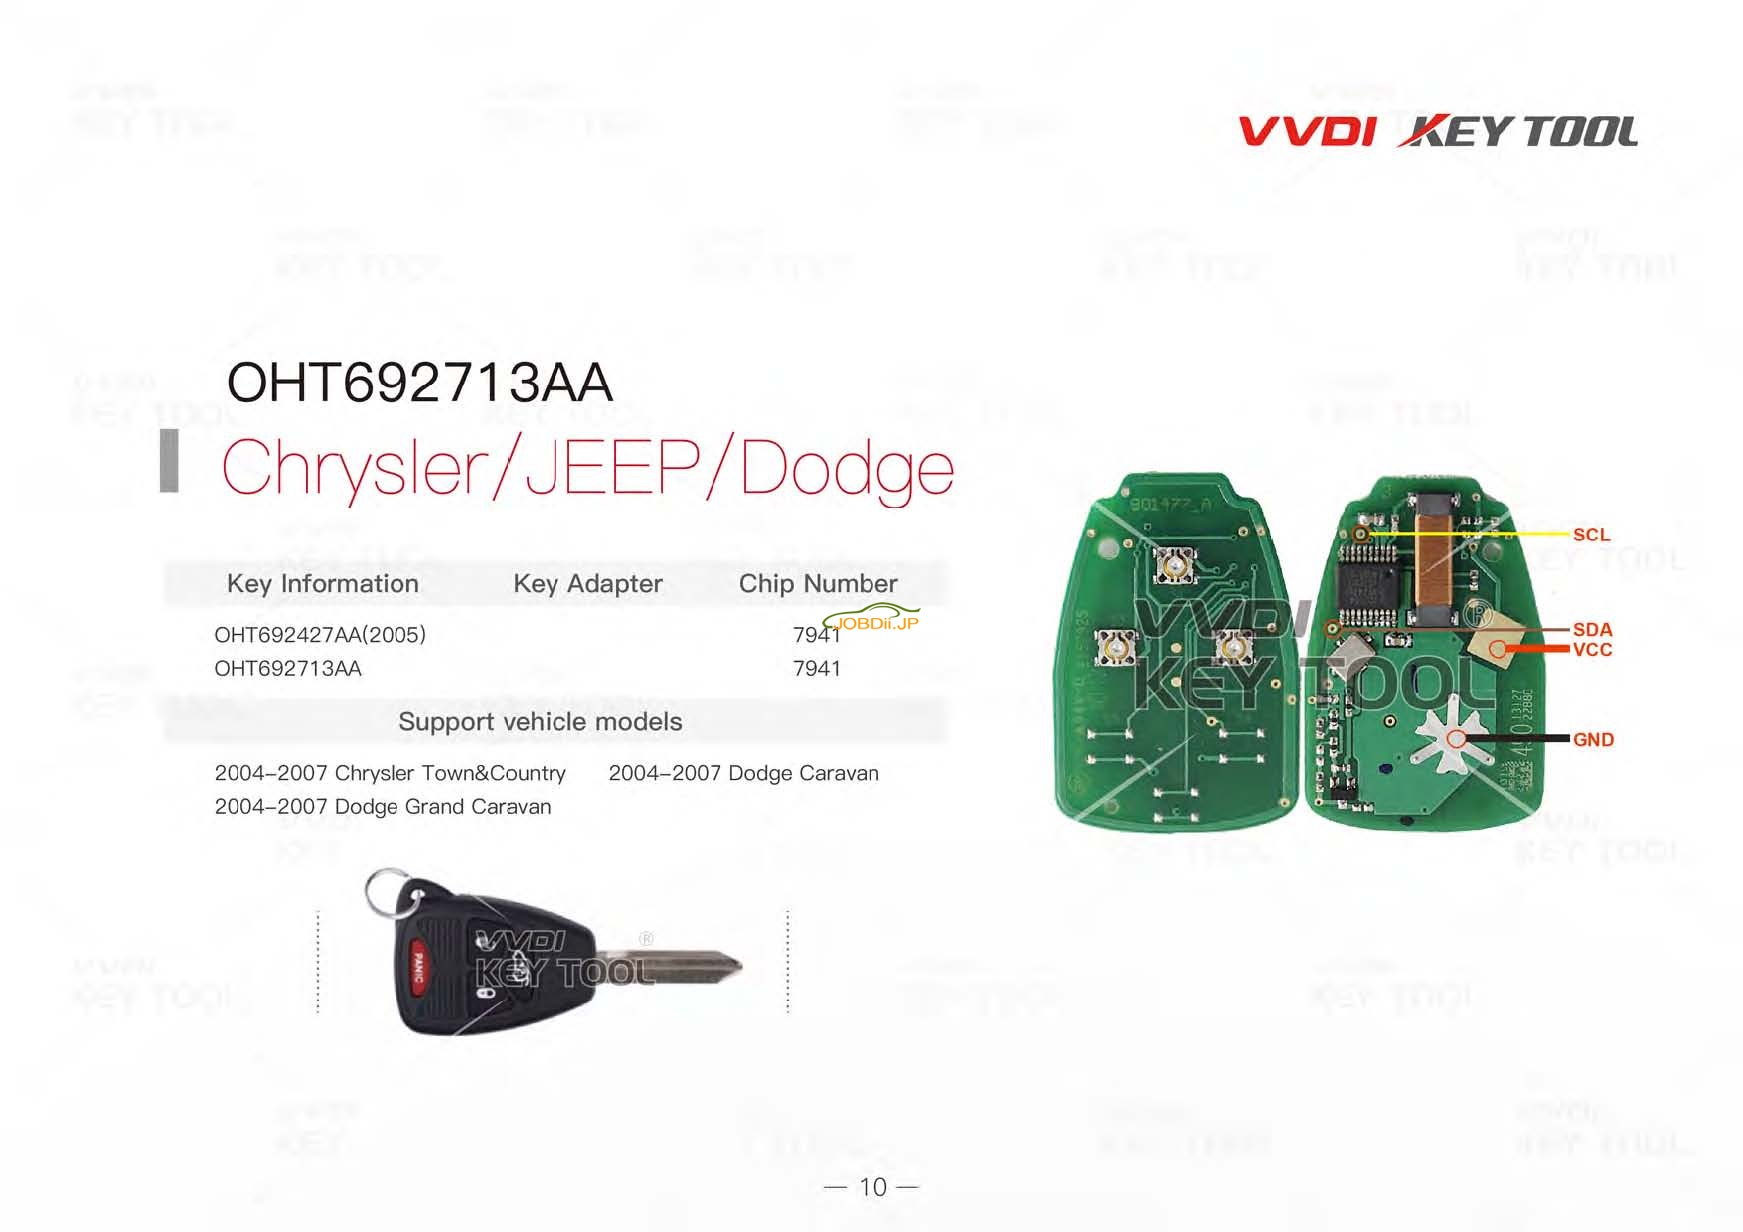 vvdi-key-tool-renew-diagram-10